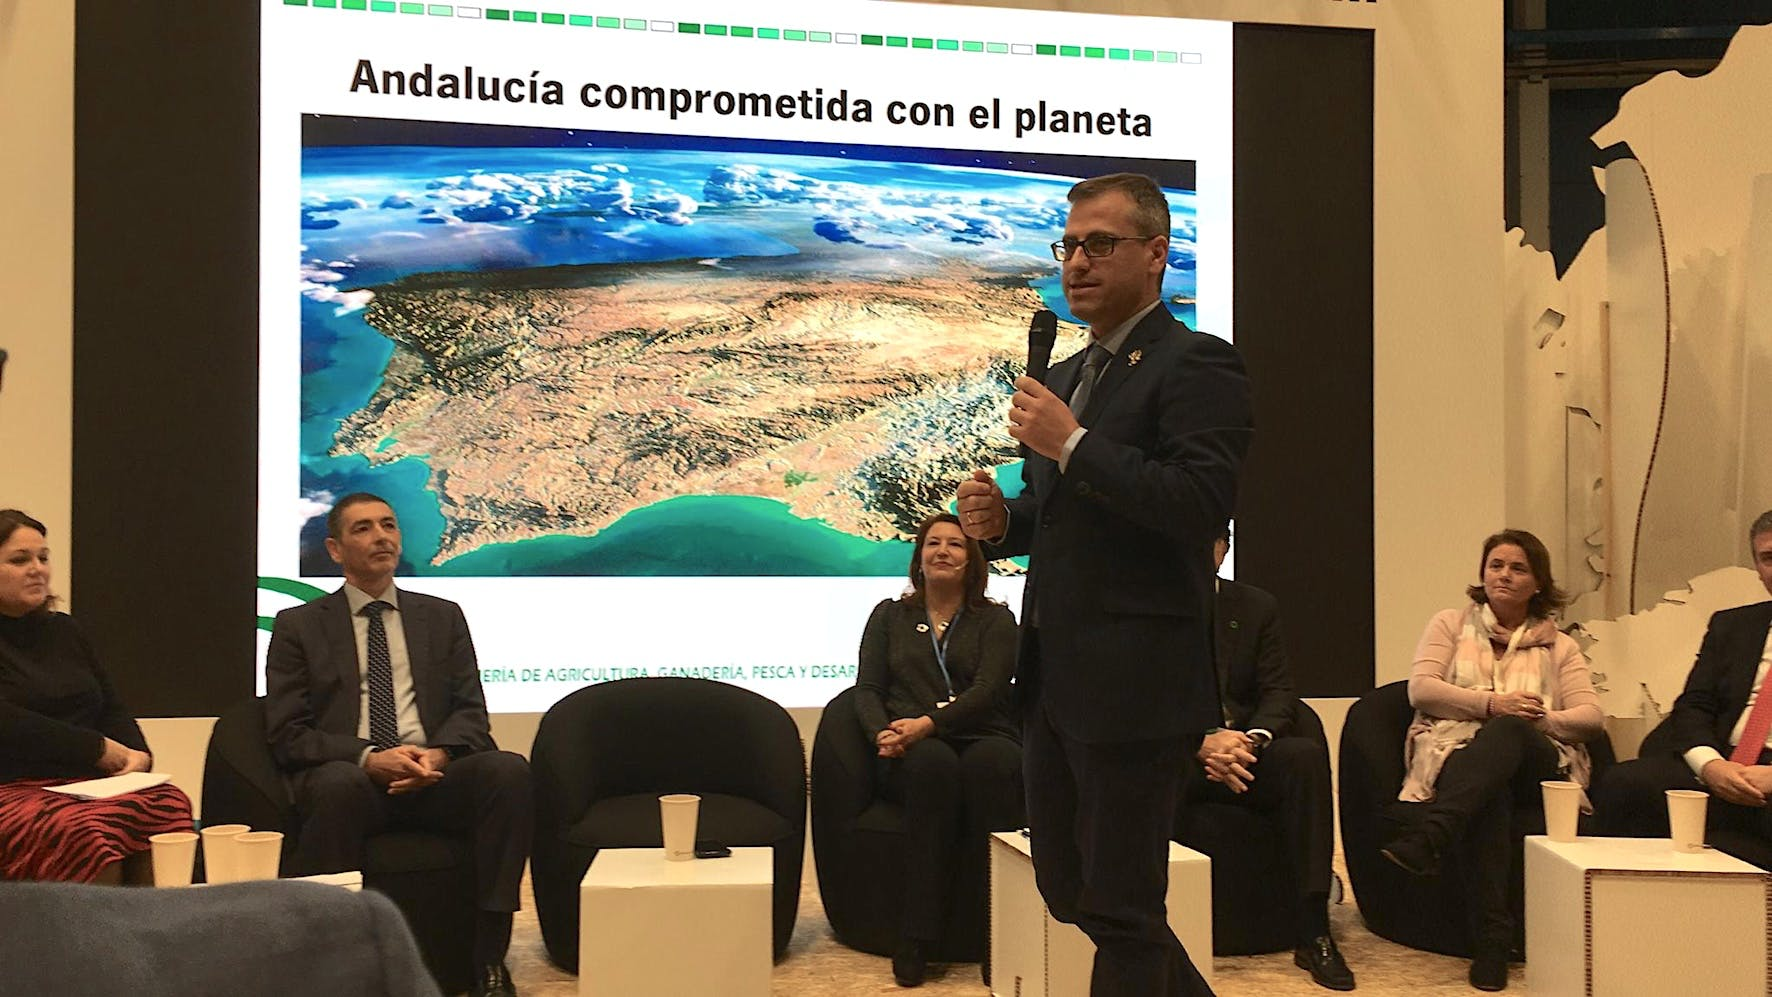 Image of Ponencia Antonio Urdiales Andalucia Cop25 1 in Cosentino demonstrates its sustainability policy at COP25 - Cosentino